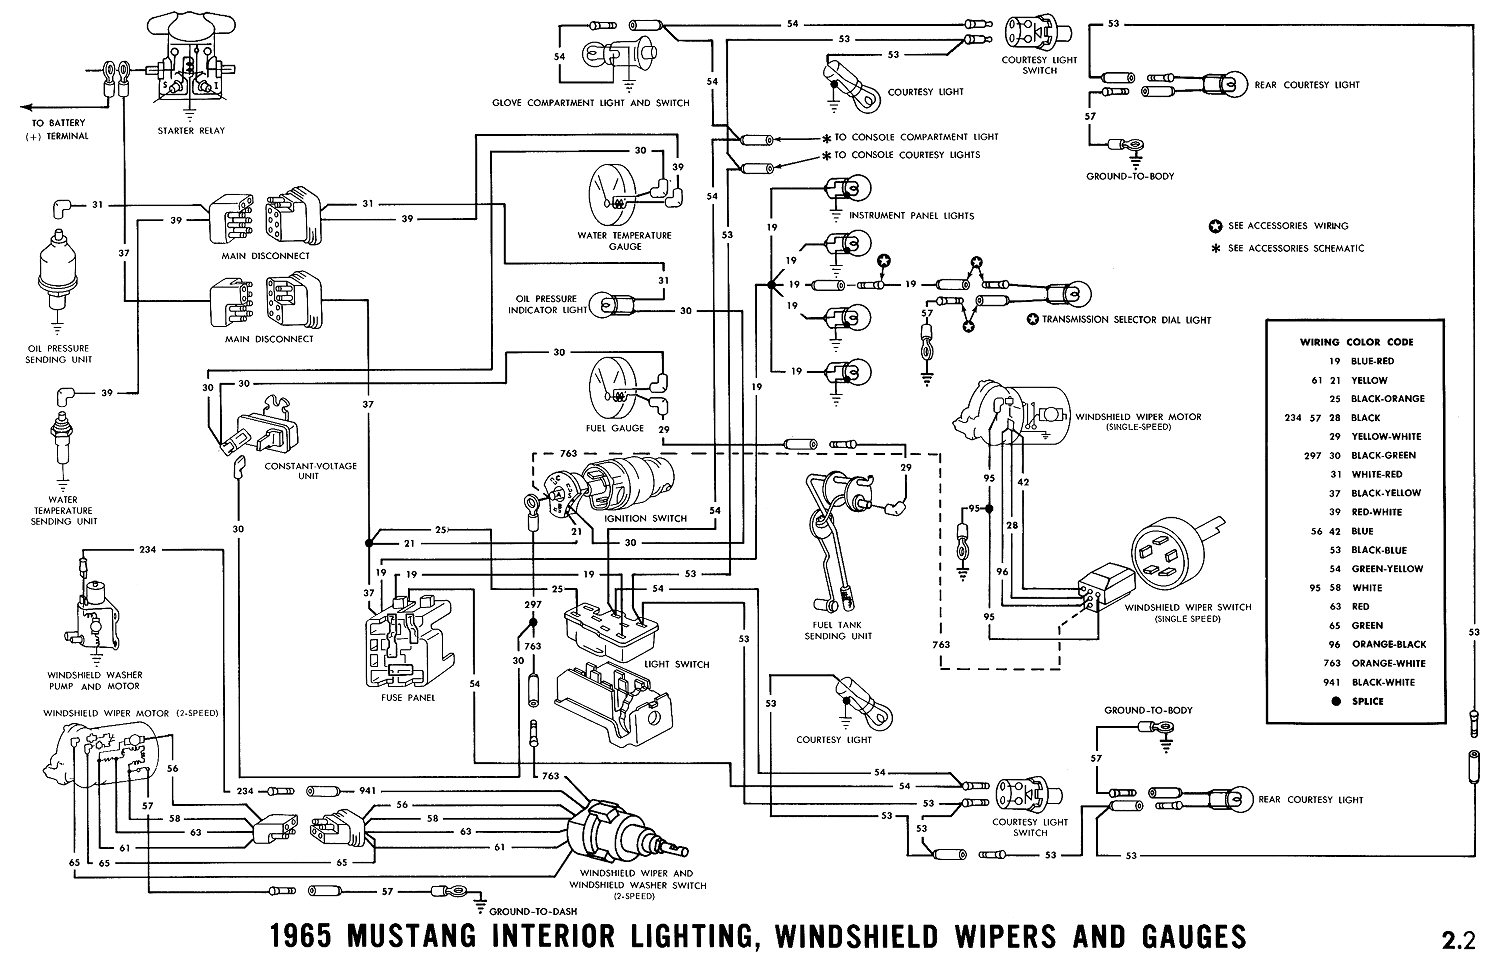 1965 Mustang Wiring Diagrams Average Joe Restoration 5 0 Engine Diagram Oil Pressure